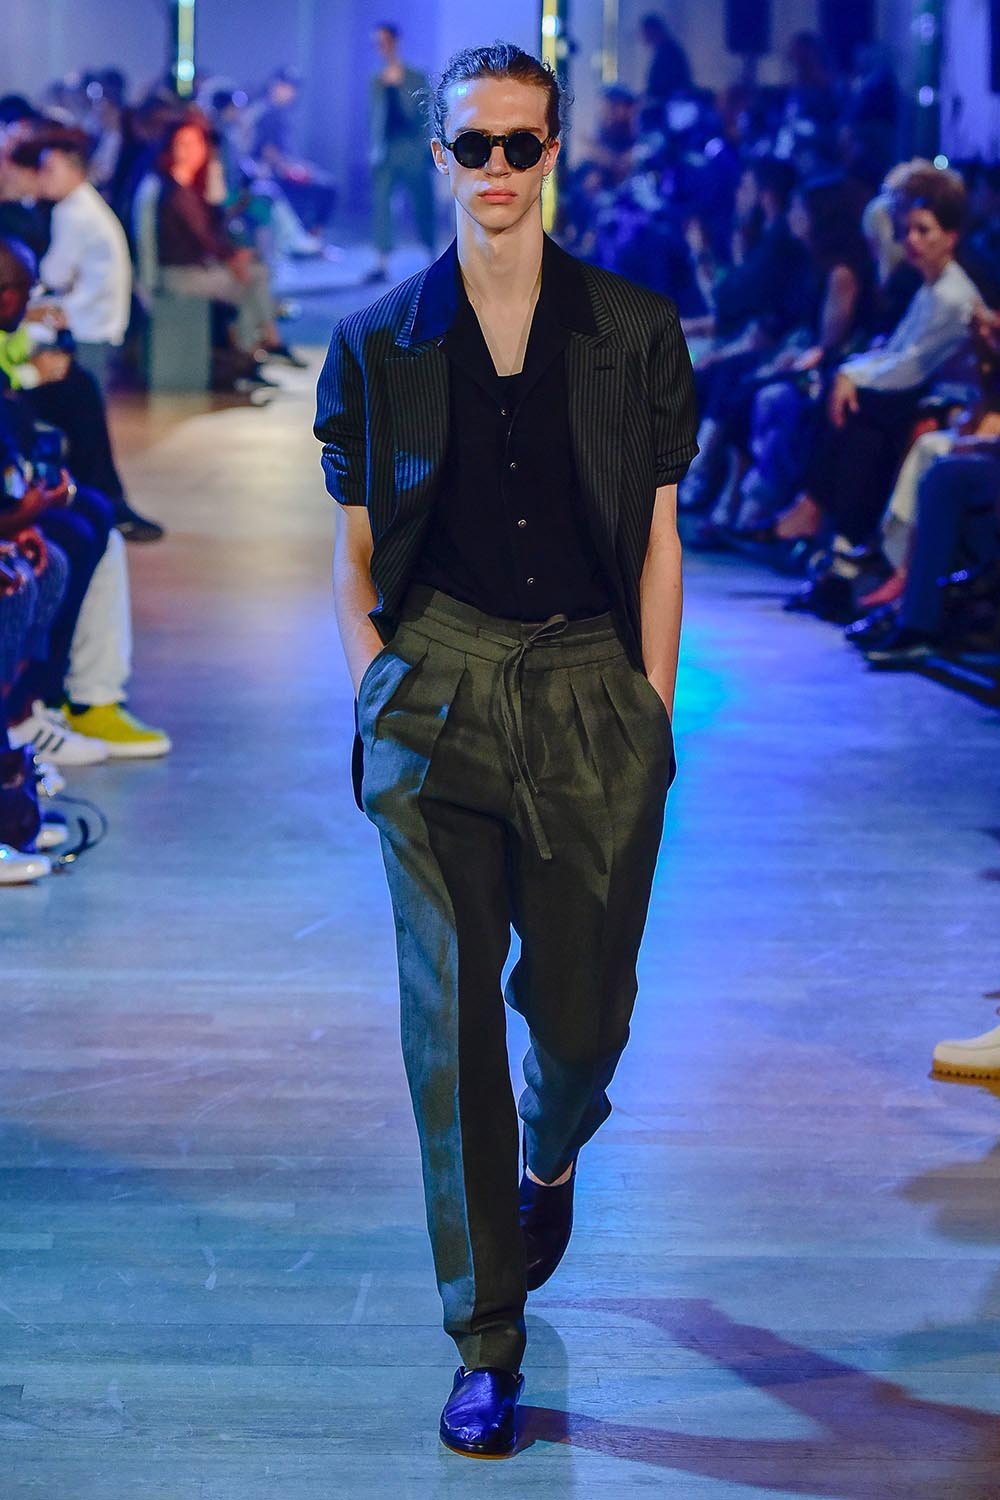 Cerruti 1881 Paris Fashion Week Men's SS19 - Sagaboi - Look 1